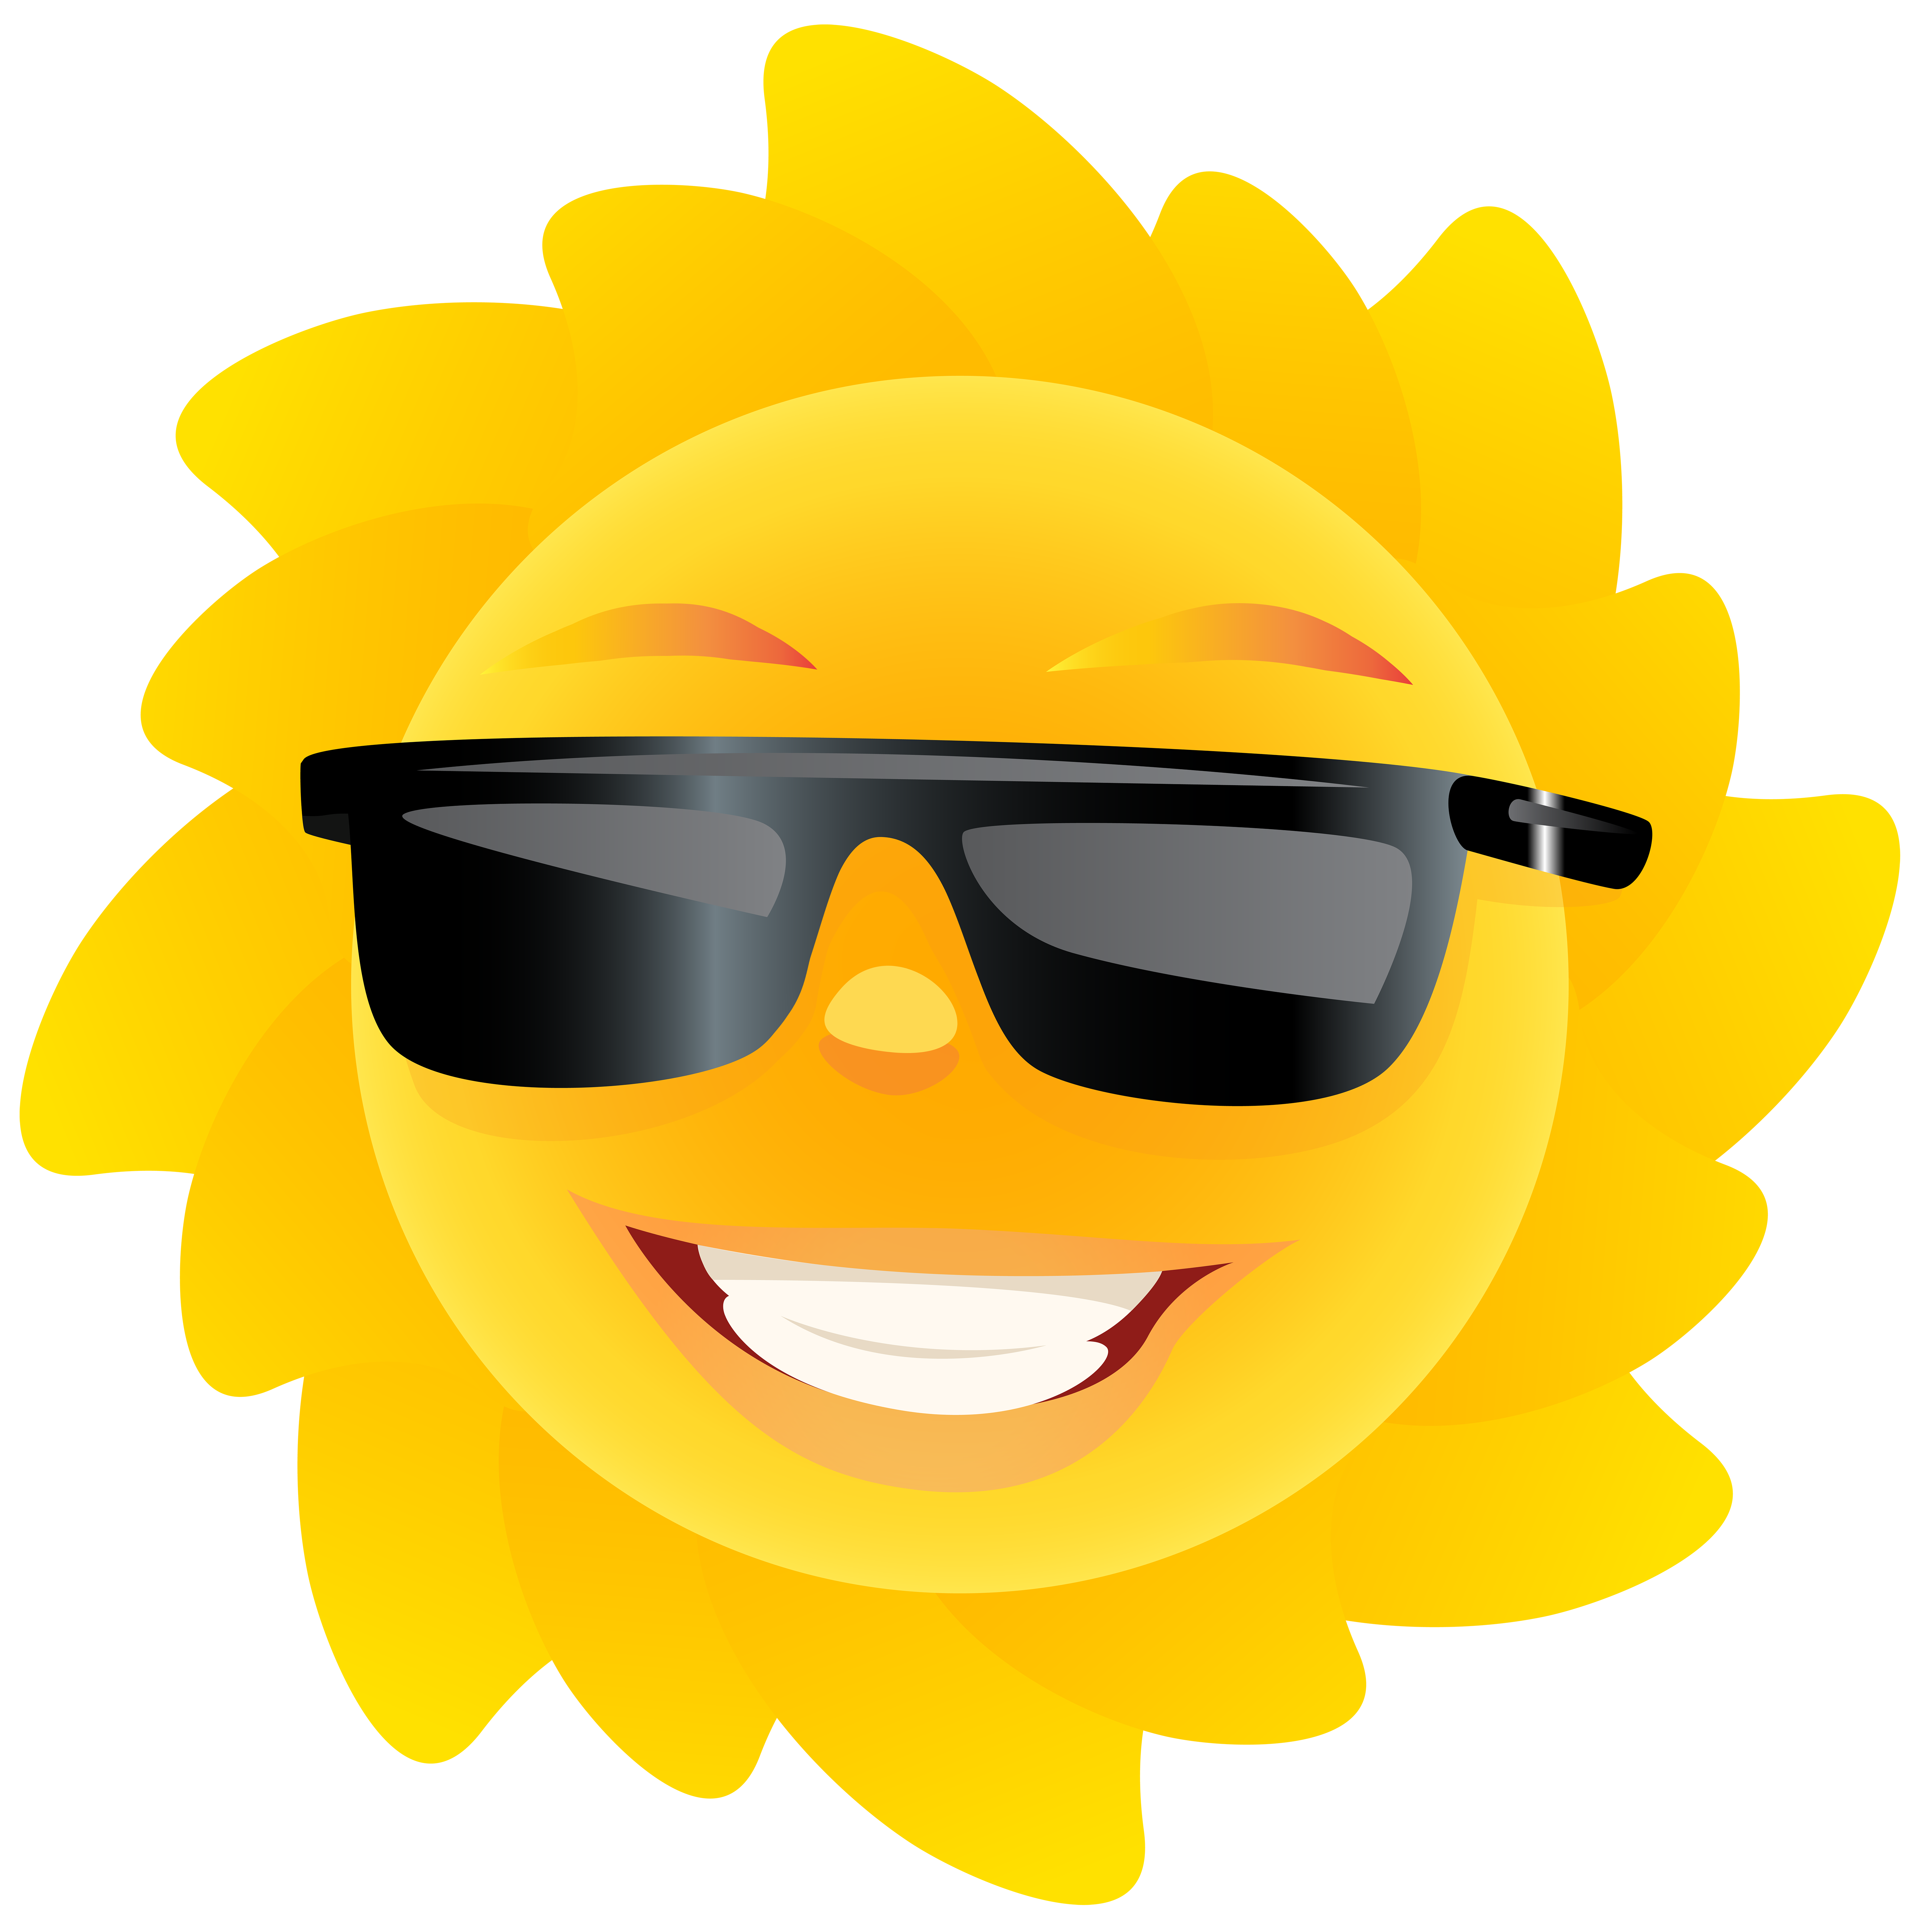 Cute sun smiling clipart royalty free stock Cute Sun Transparent PNG Clip Art Image | Gallery Yopriceville ... royalty free stock